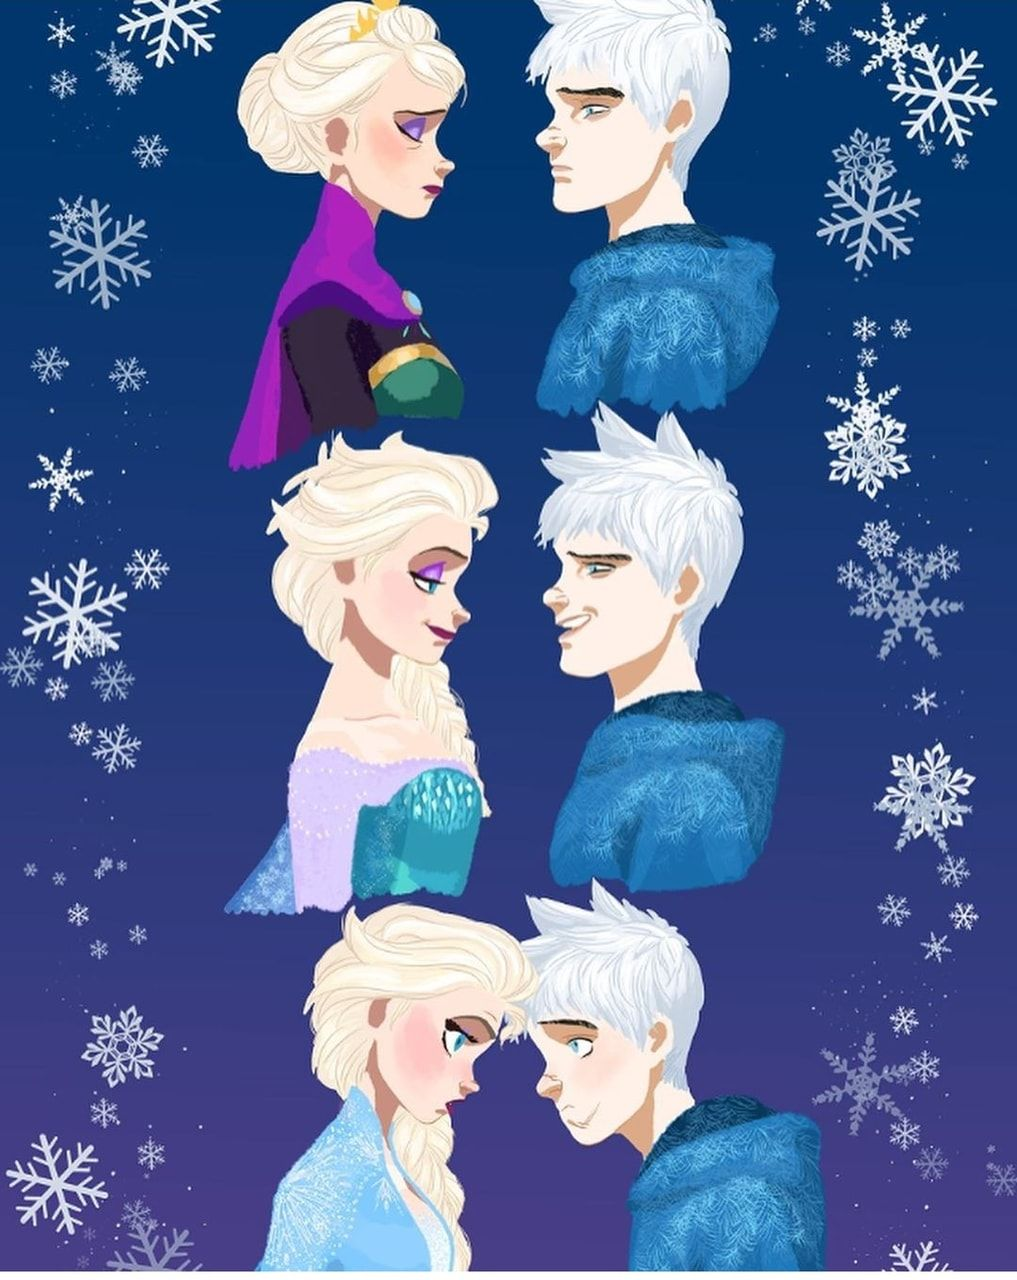 Jelsa Elsa And Jack Frost Fanart Frozen 2 Rotg By